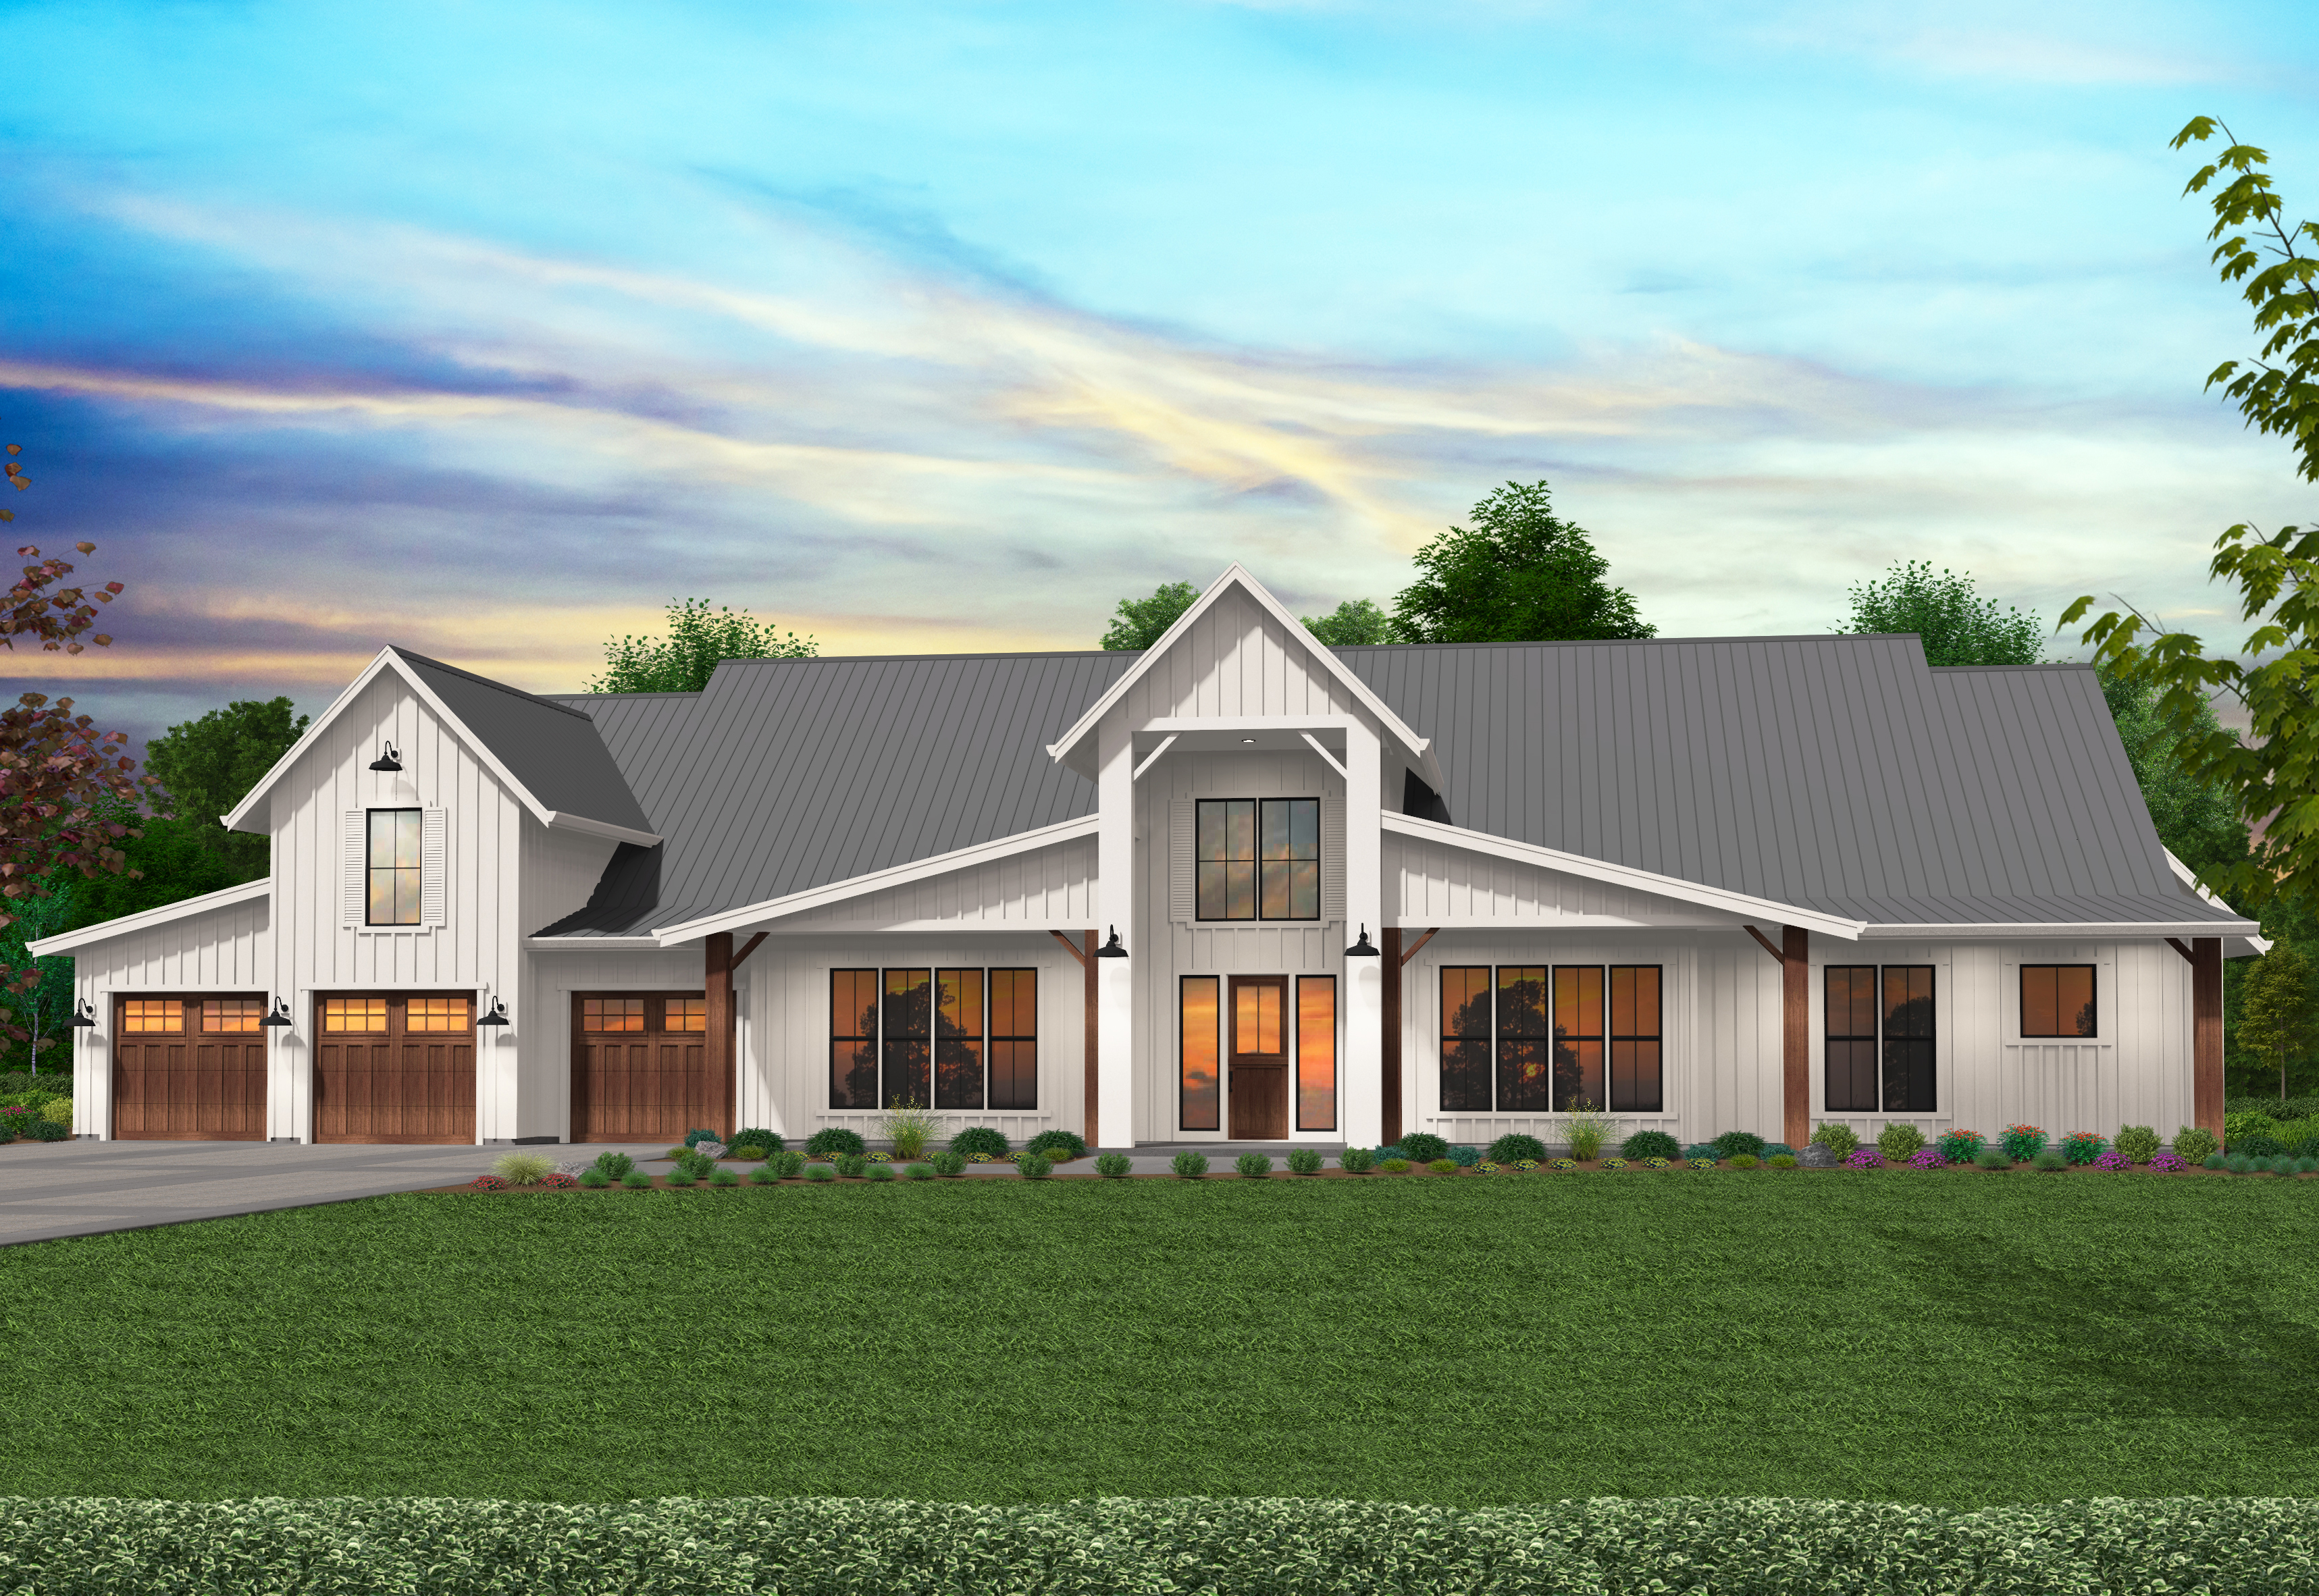 Texas Strong House Plan | Modern Barn House by Mark Stewart